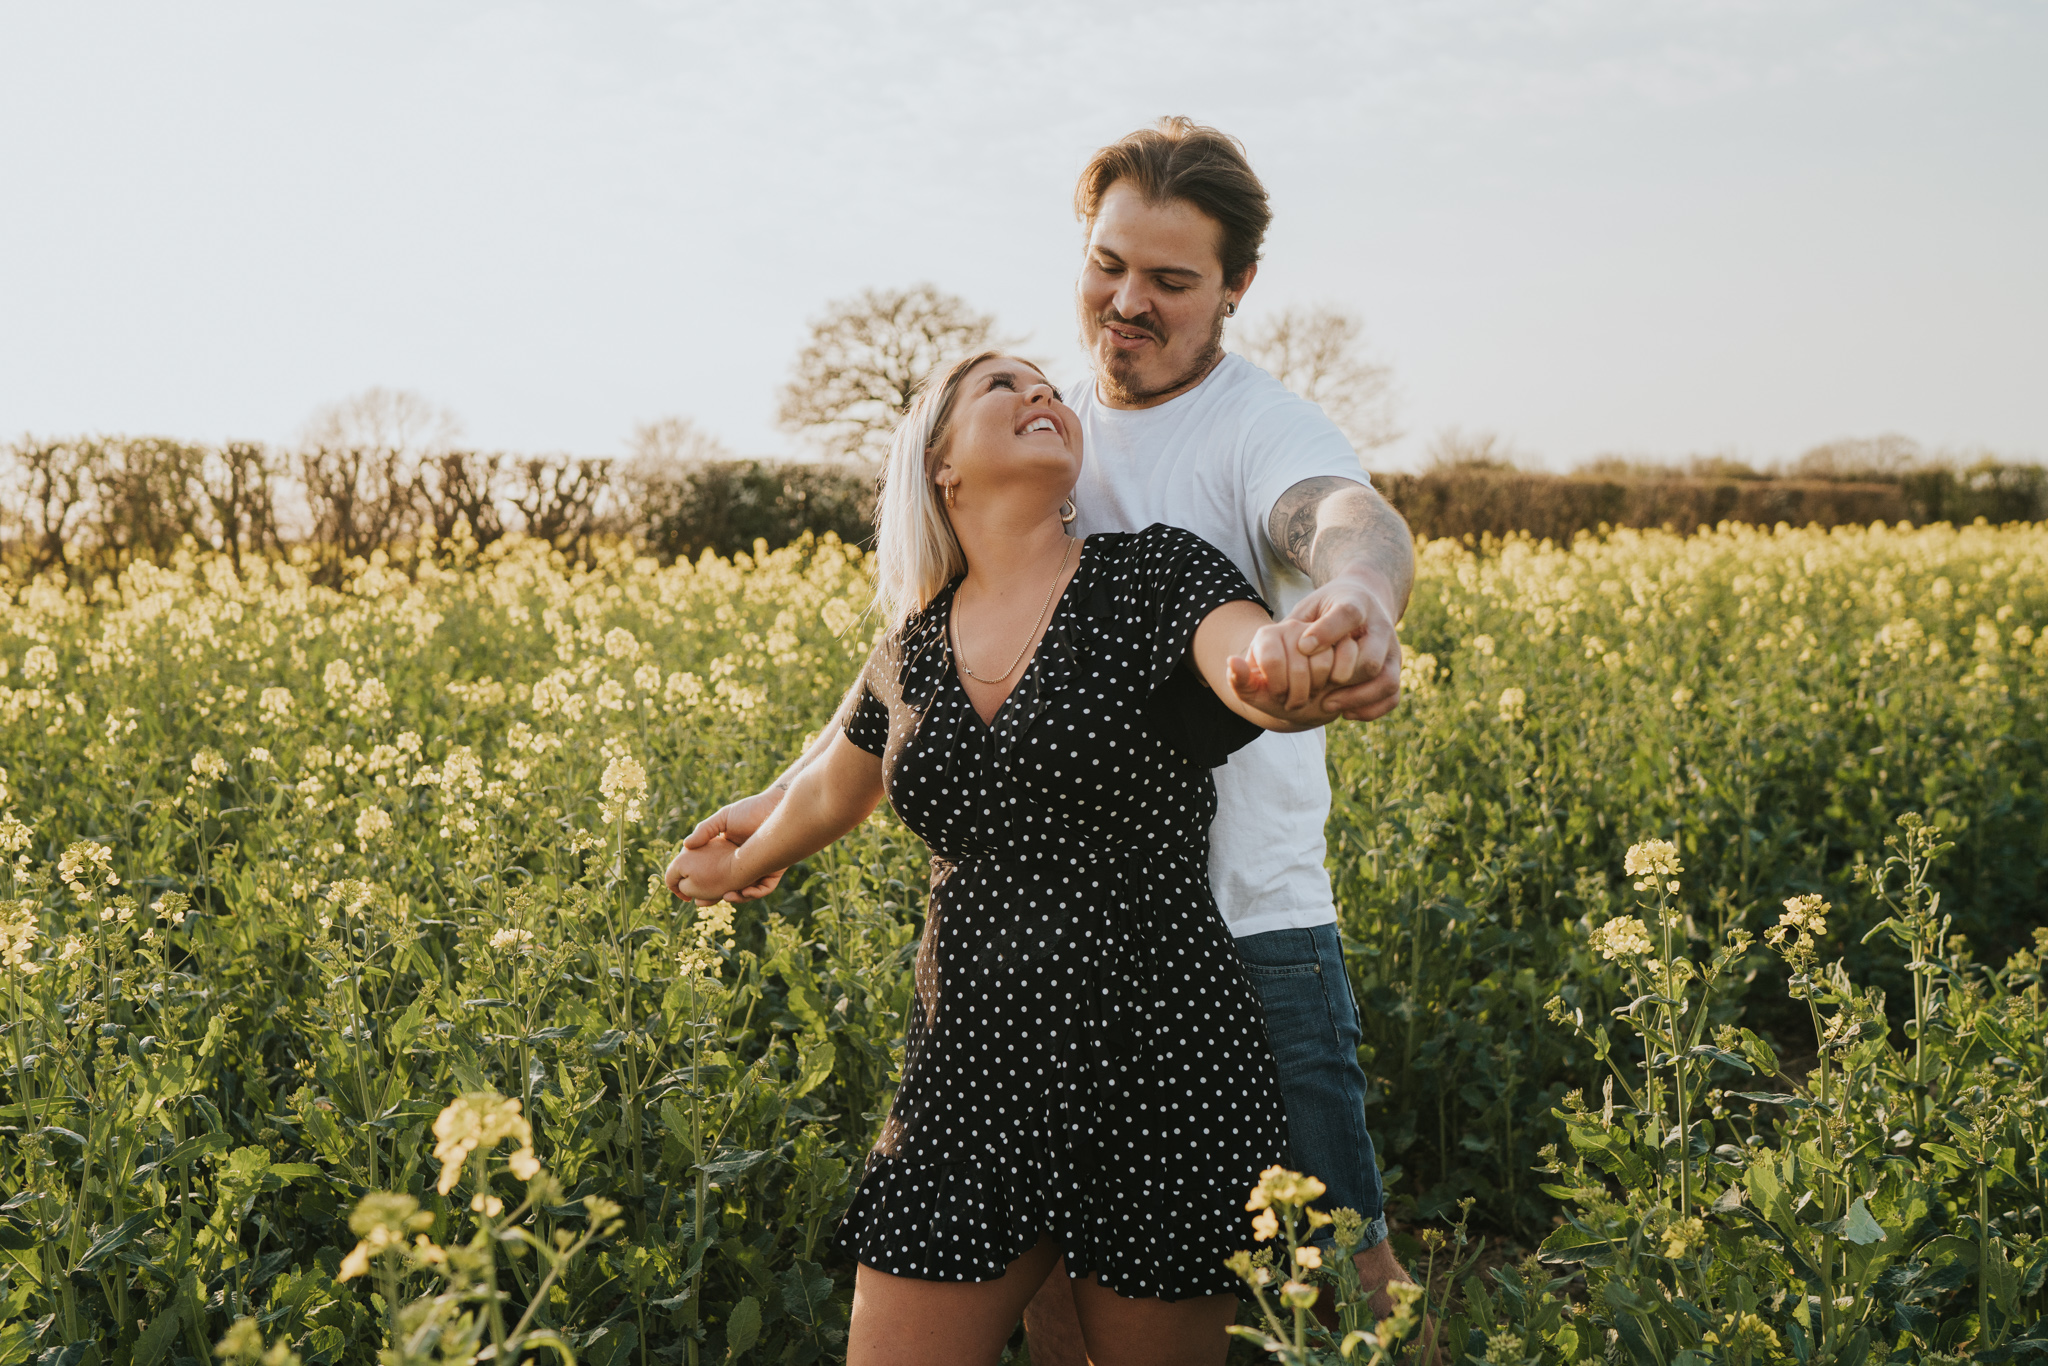 chloe-dan-pre-wedding-engagement-session-countryside-grace-elizabeth-colchester-essex-alternative-wedding-lifestyle-photographer-suffolk-norfolk-devon (11 of 50).jpg